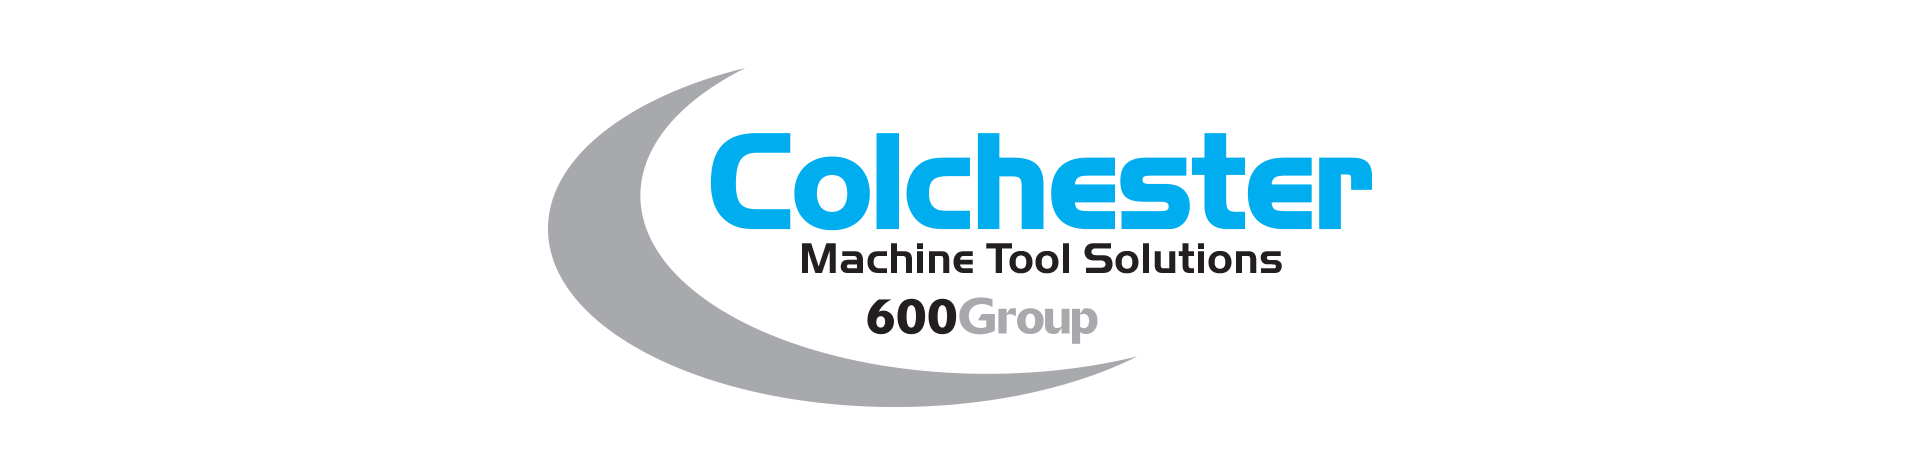 Colchester machine tools from RK International